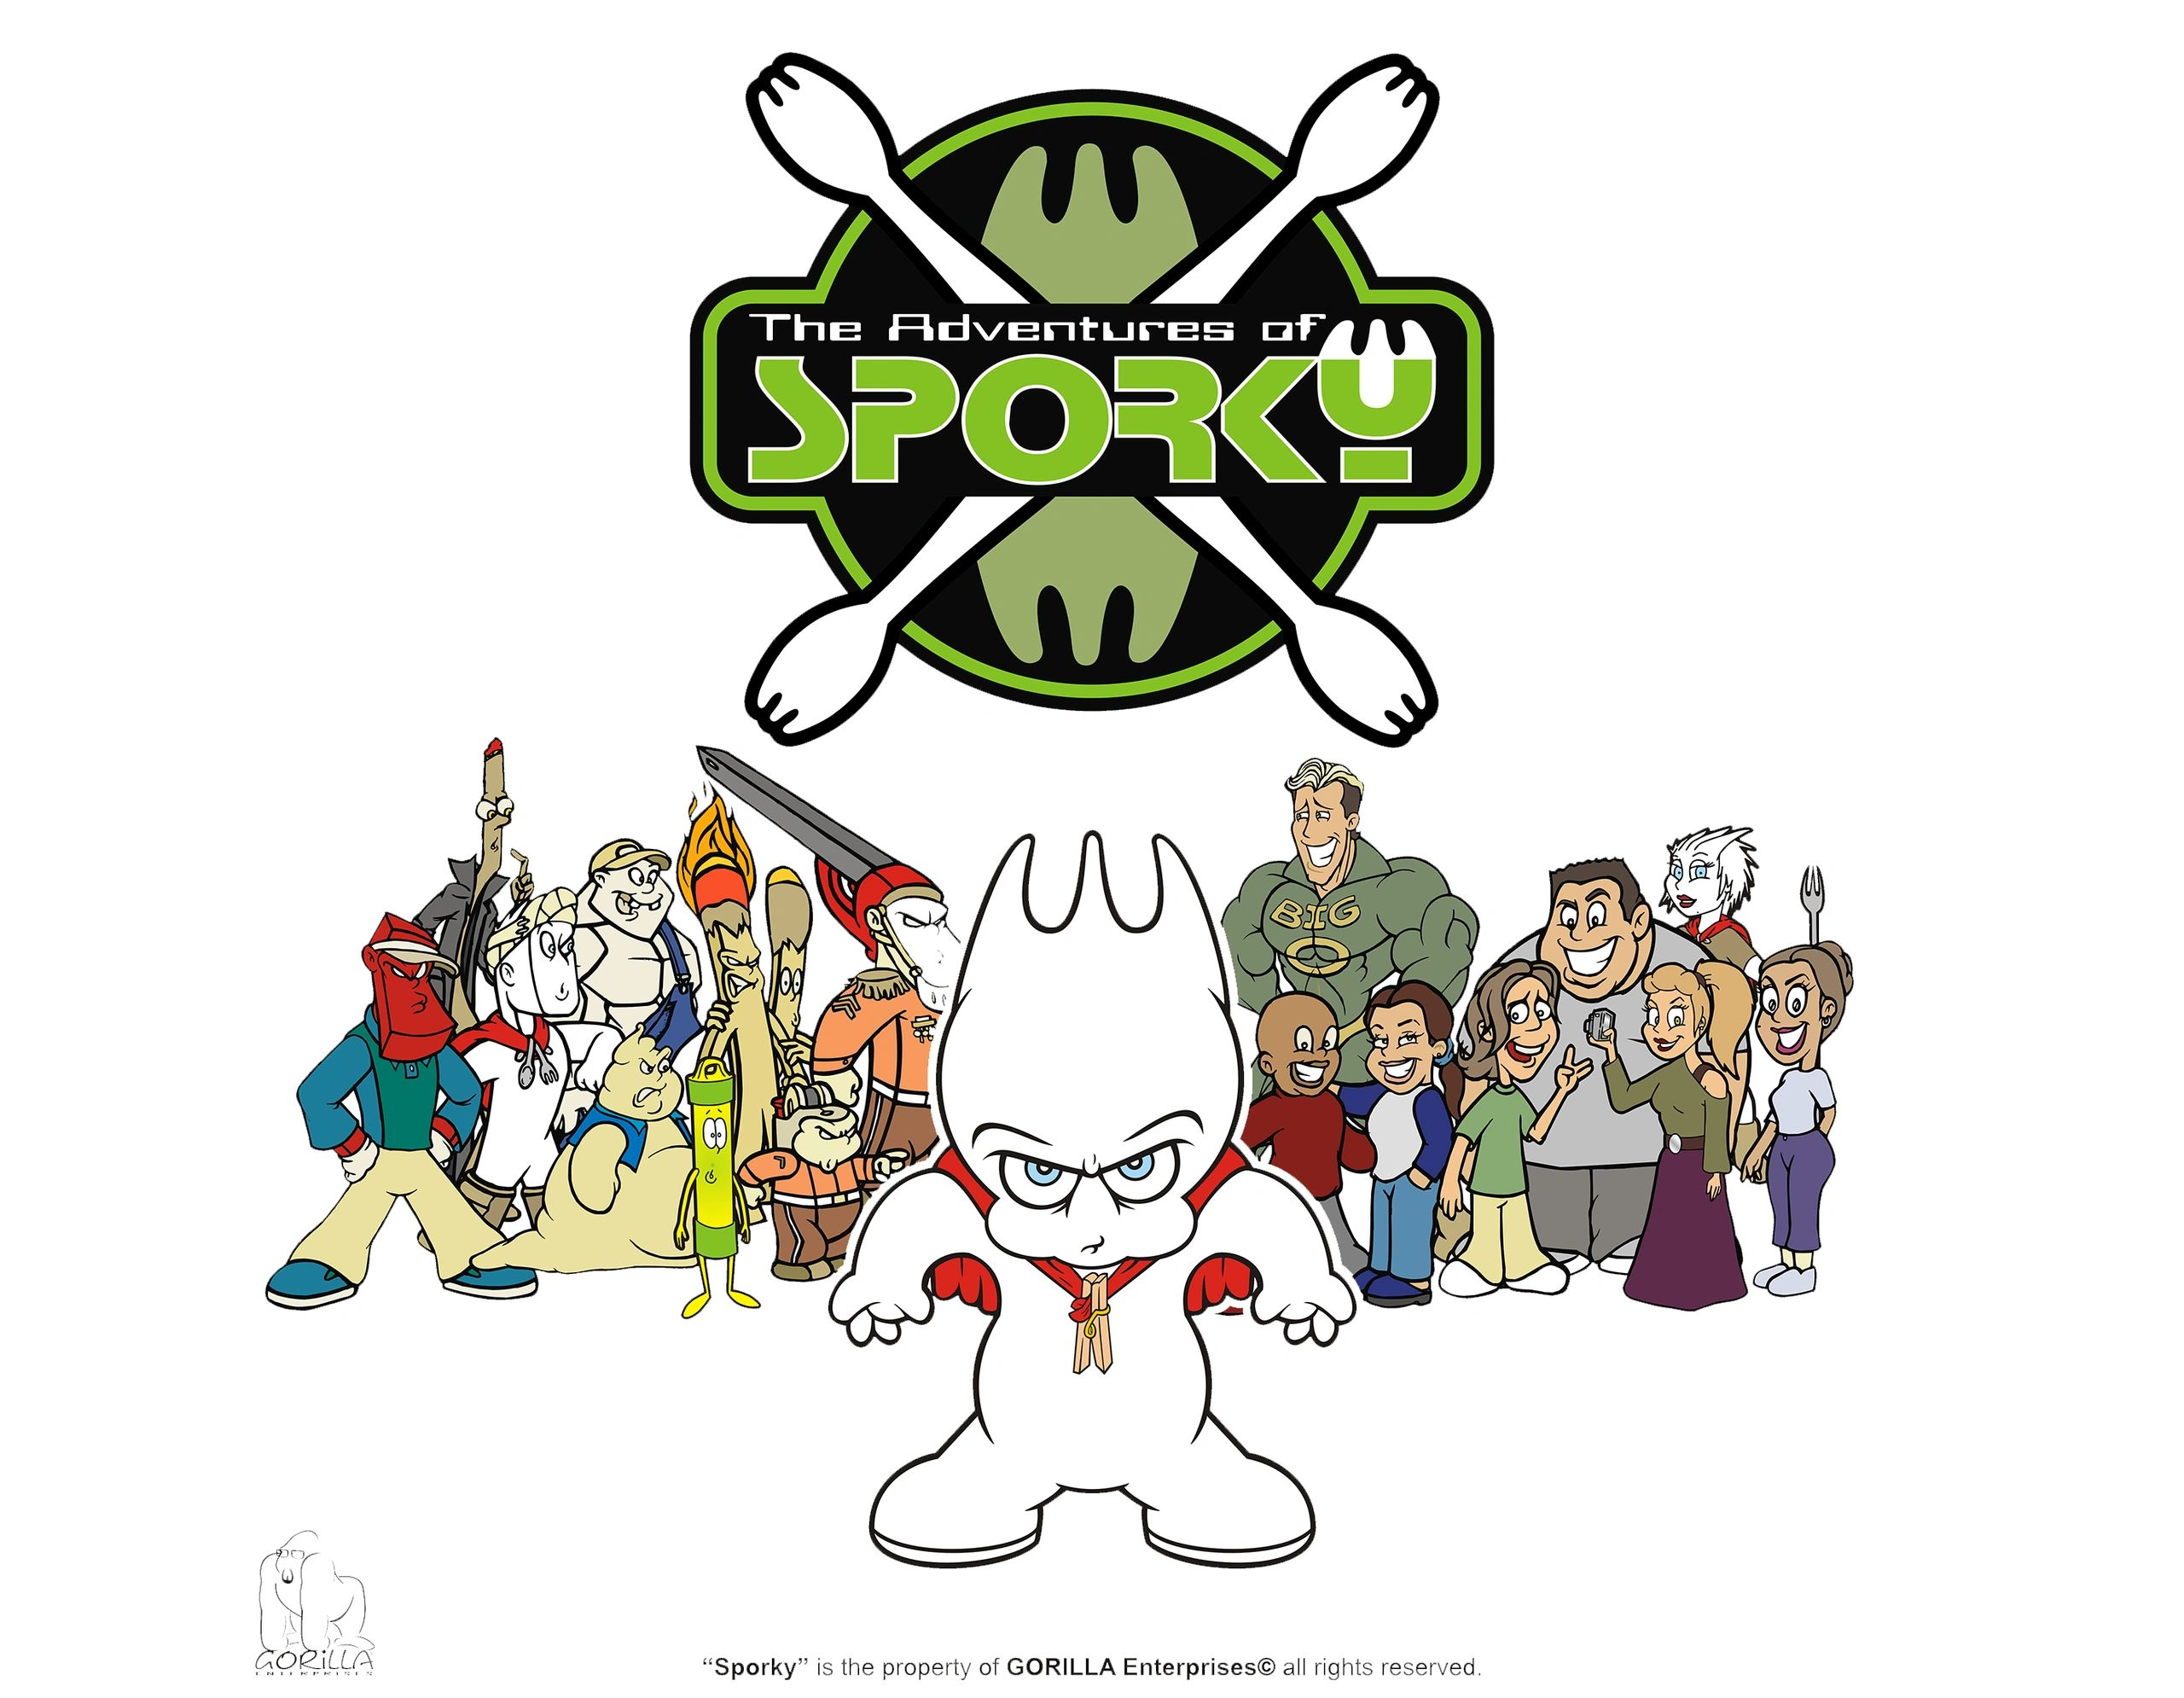 The Adventures of SPORKY Poster